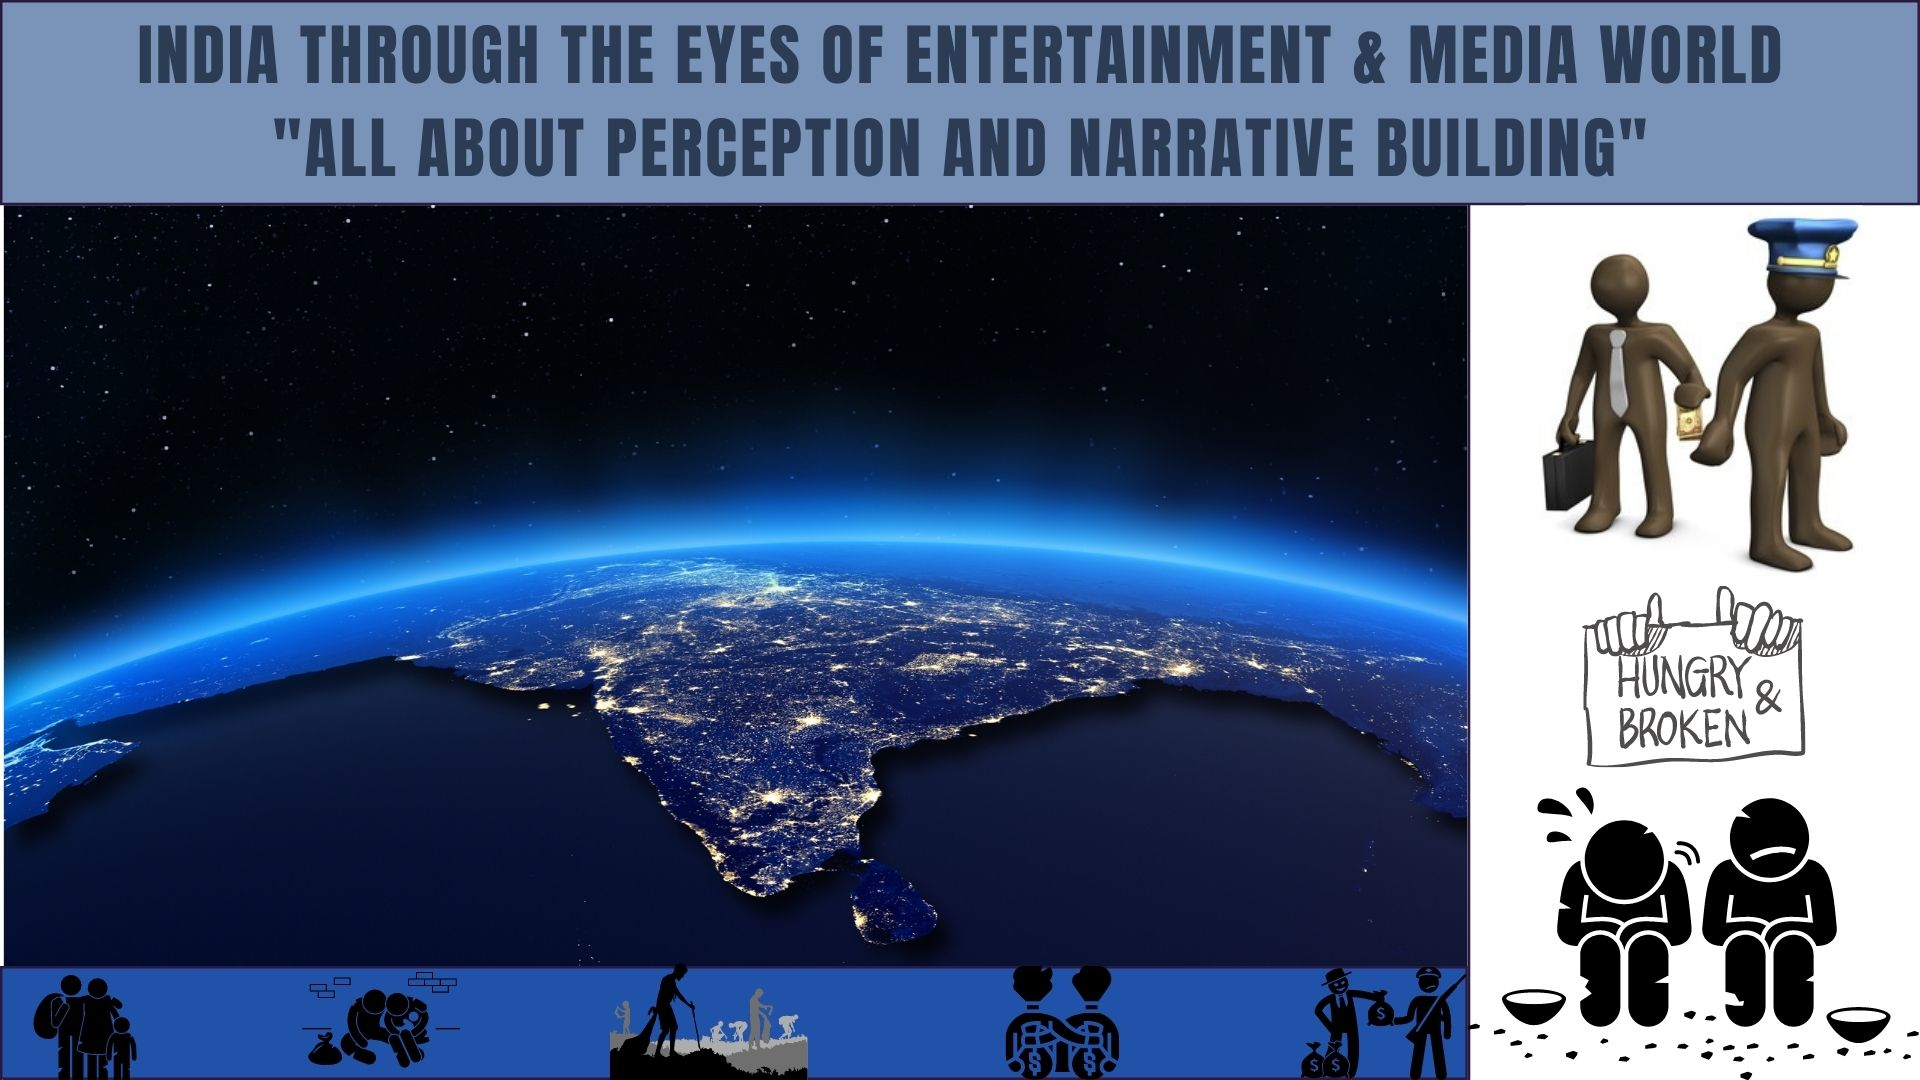 NDIA-THROUGH-THE-EYES-OF-ENTERTAINMENT-MEDIA-WORLD-ALL-ABOUT-PERCEPTION-AND-NARRATIVE-BUILDING